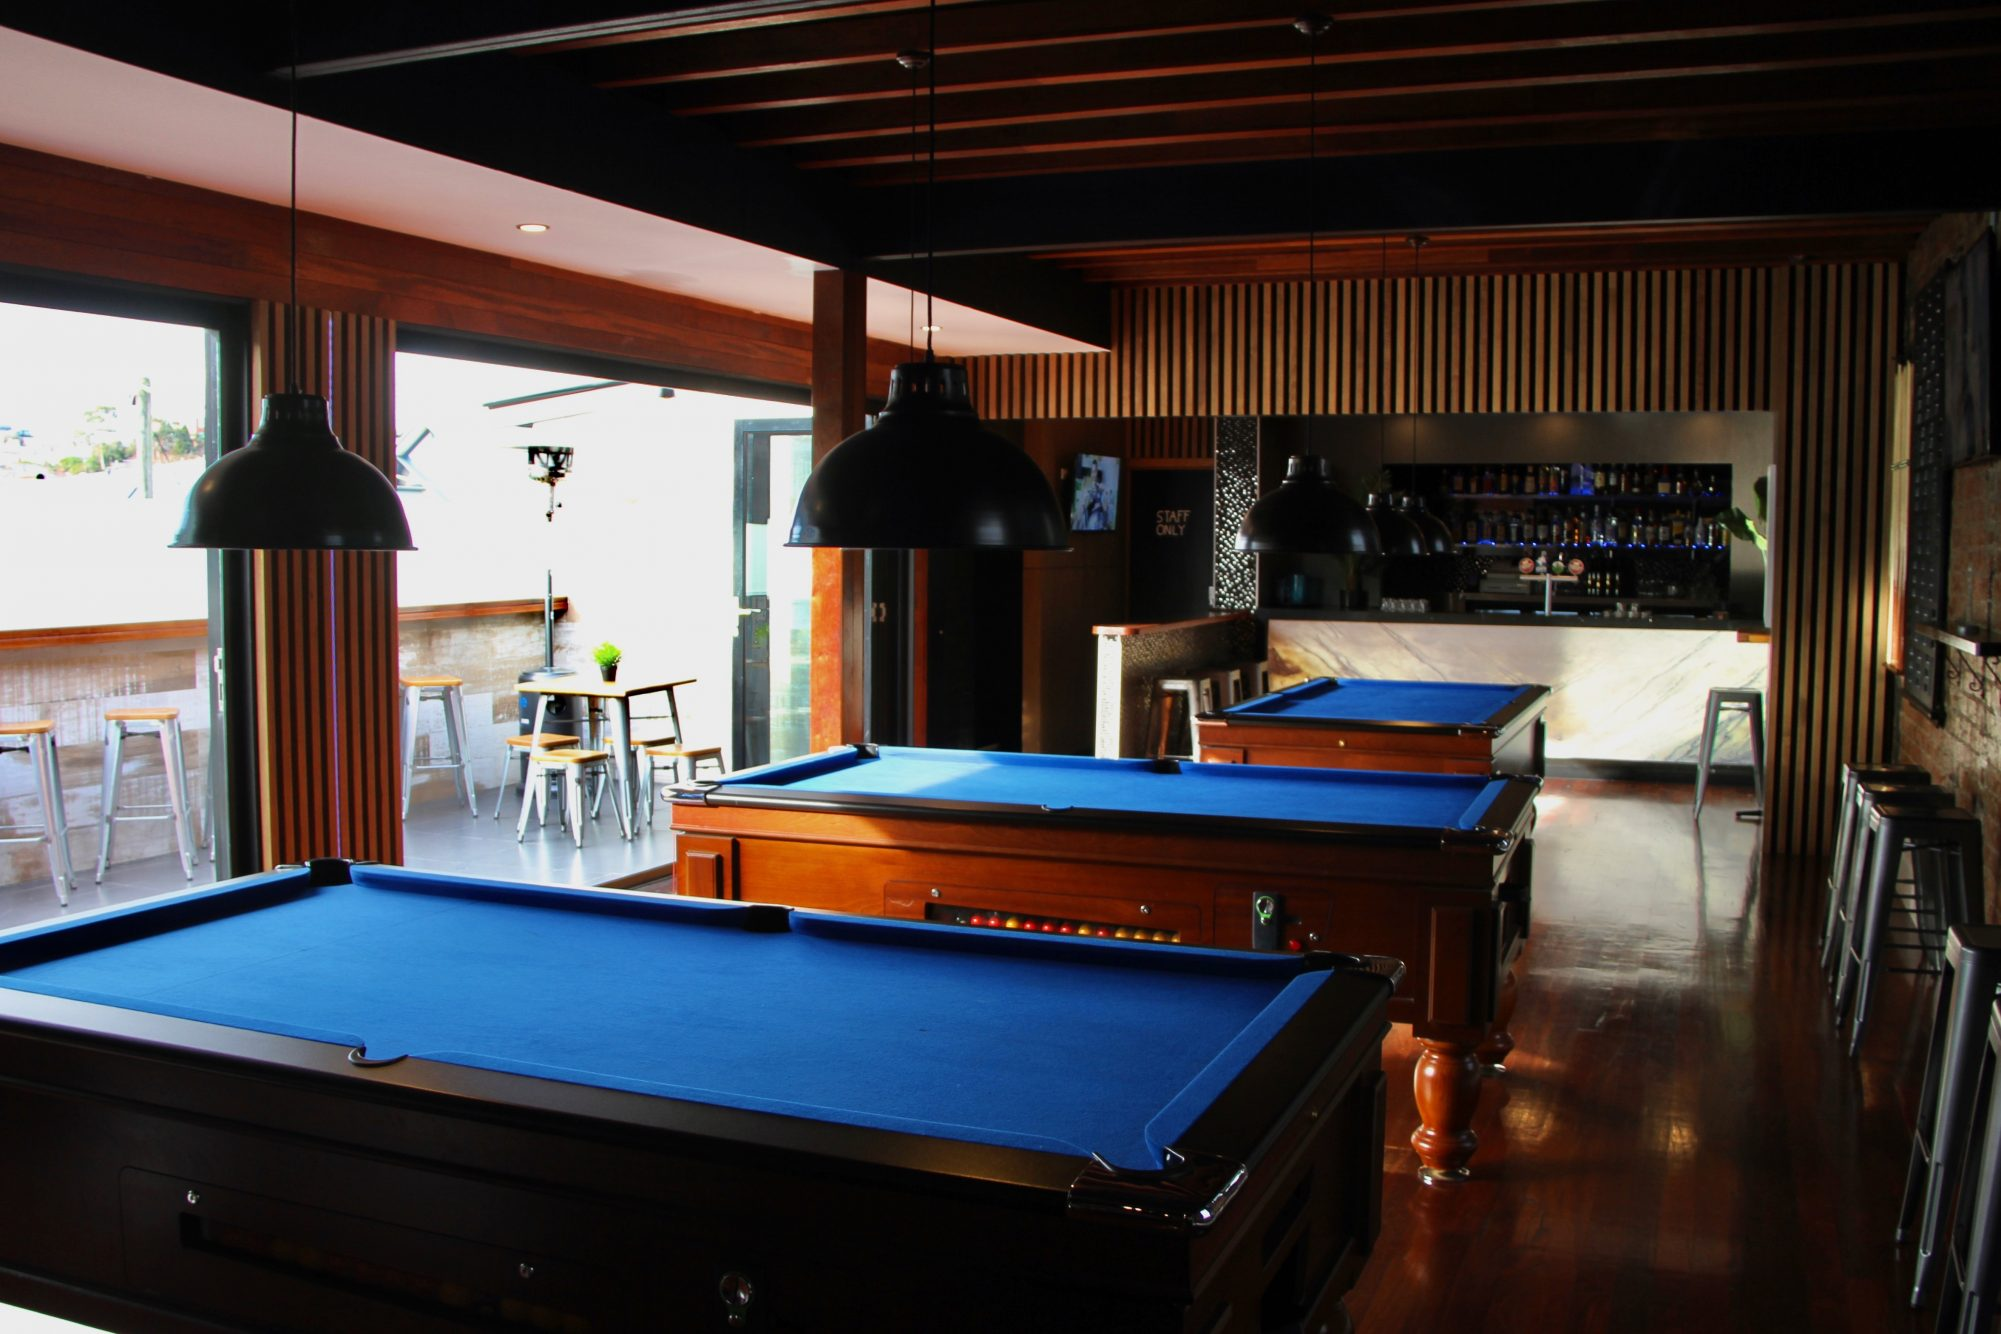 The Cricketers Arms Hotel Richmond Billiards Pool Room